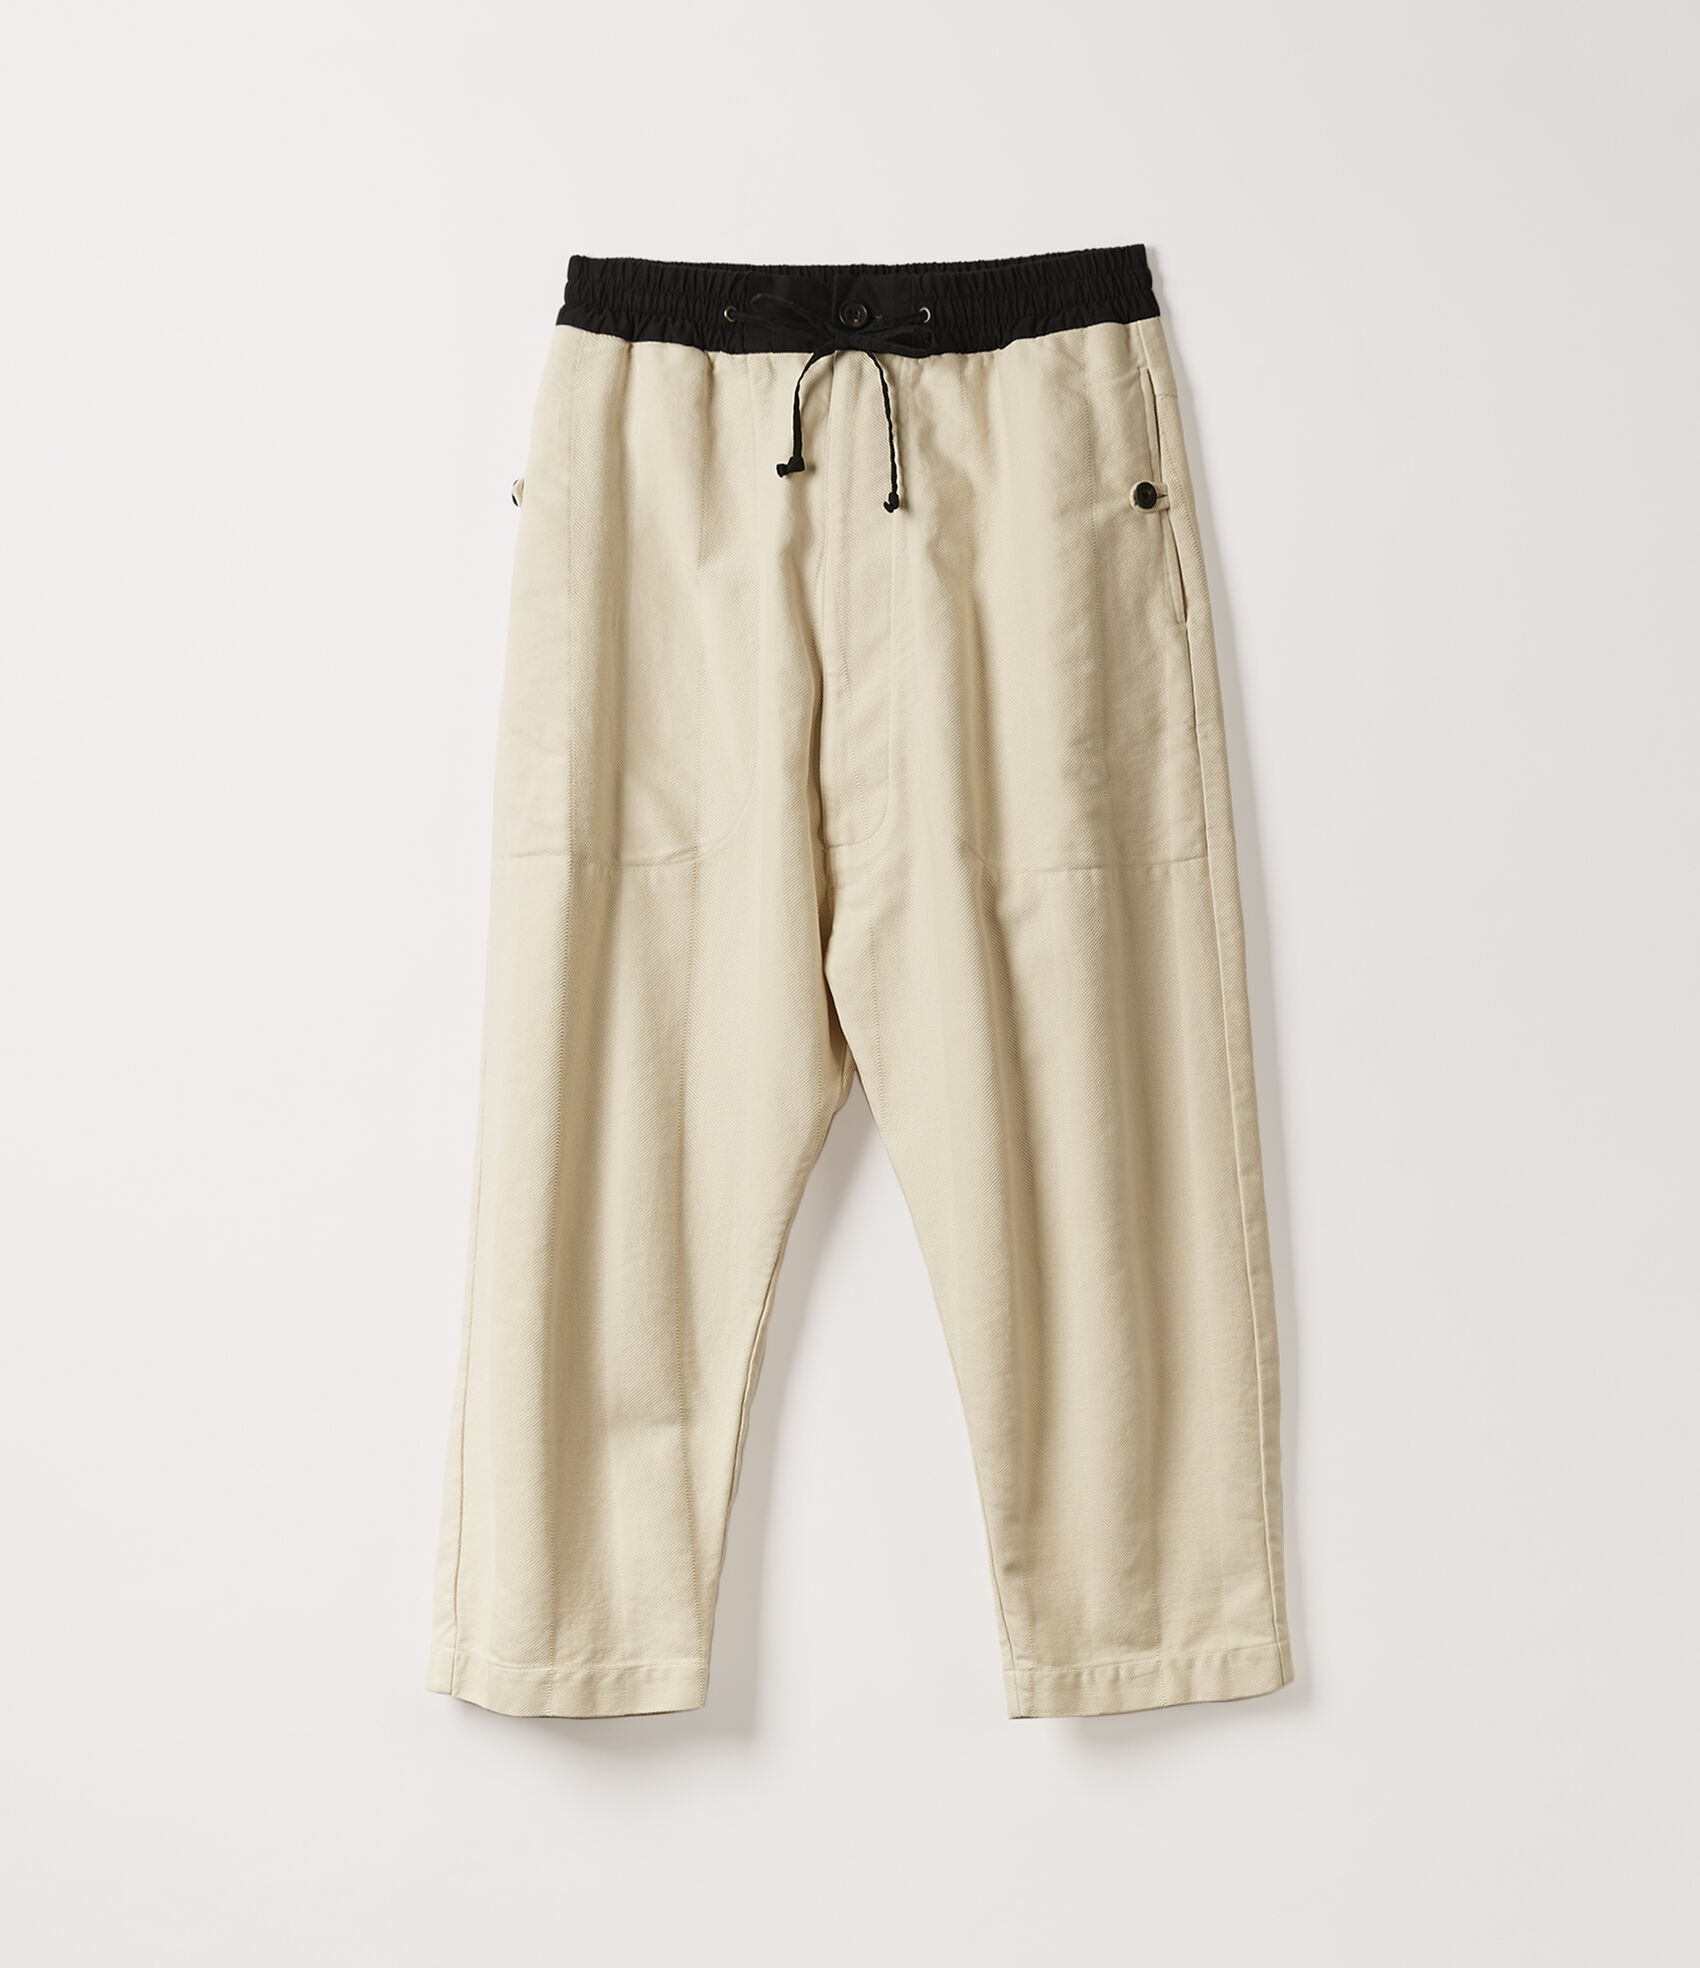 Vivienne Westwood SAMURAI TROUSERS OFF-WHITE